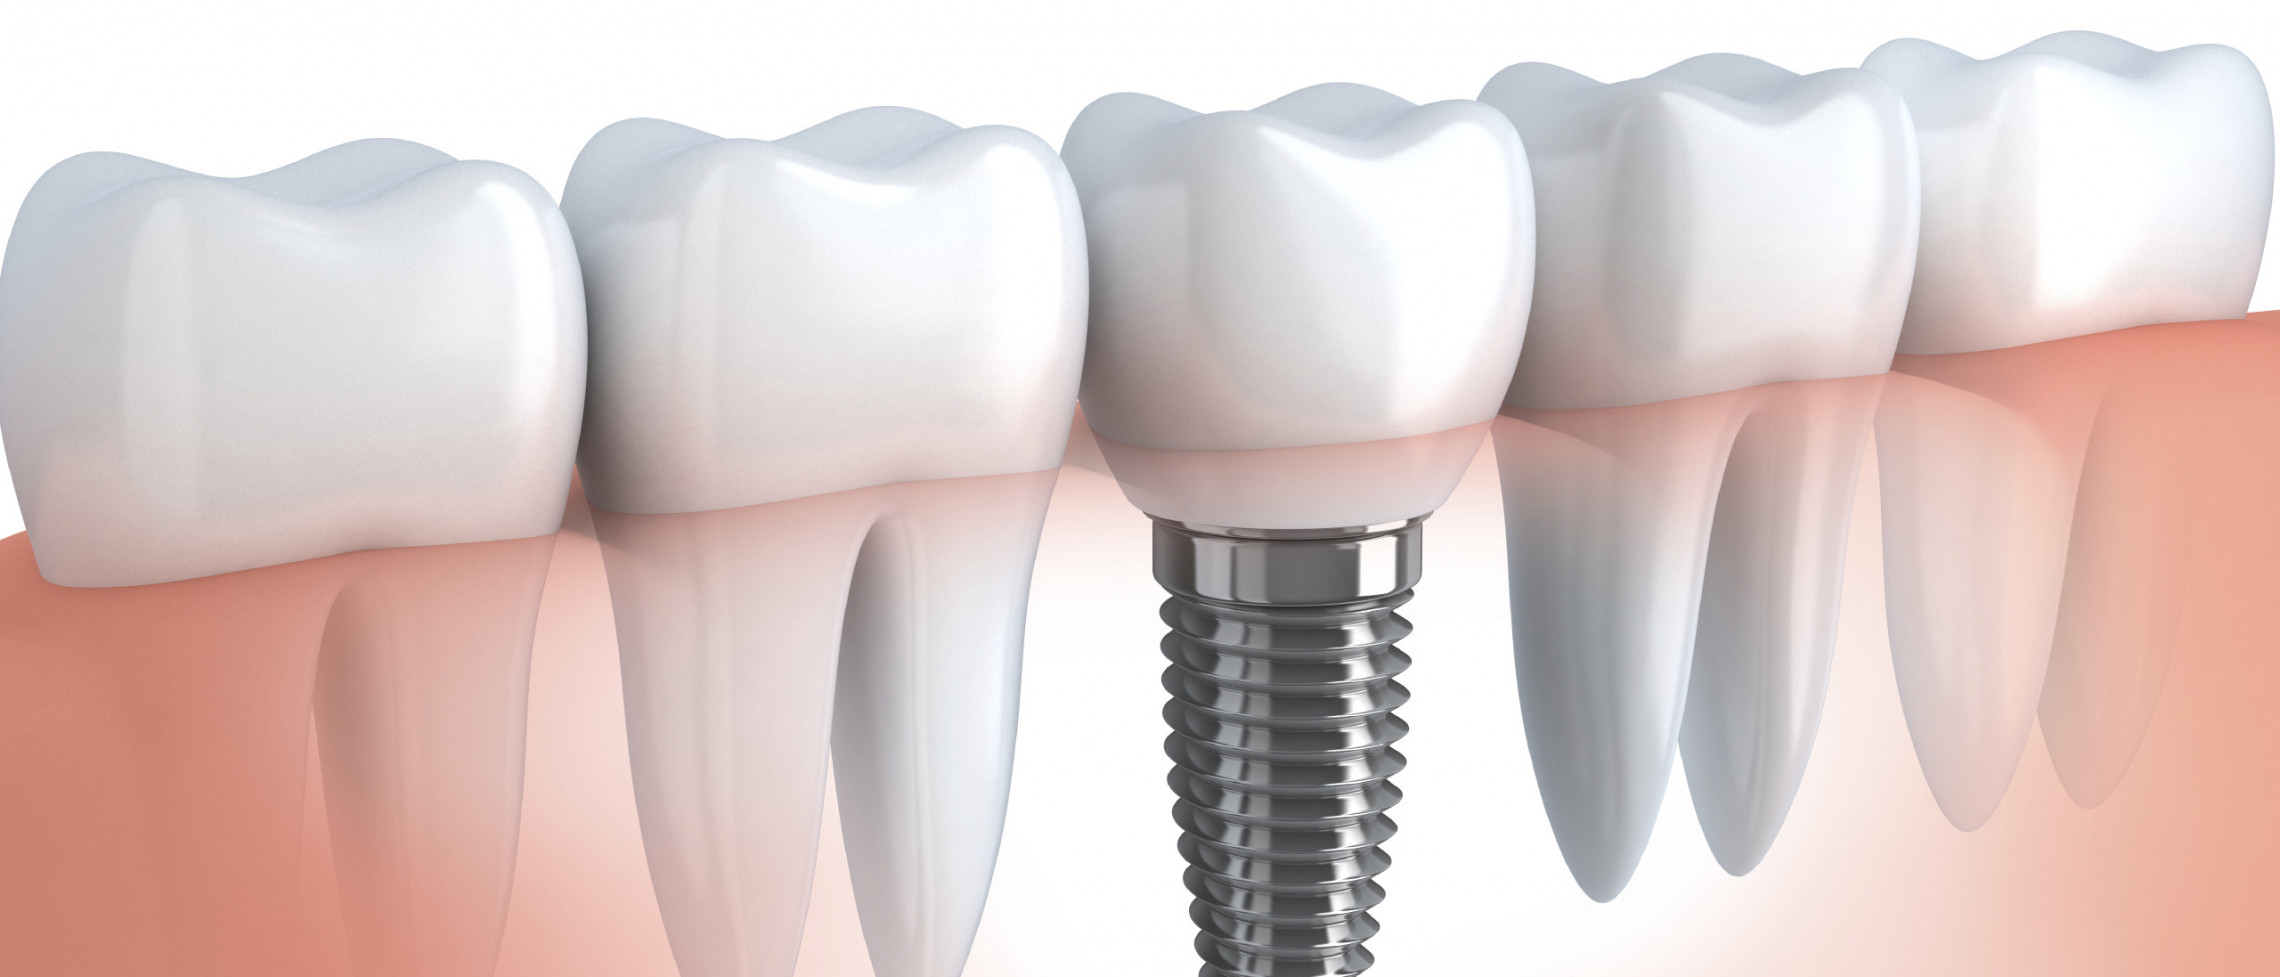 Different Dental Implant Procedures